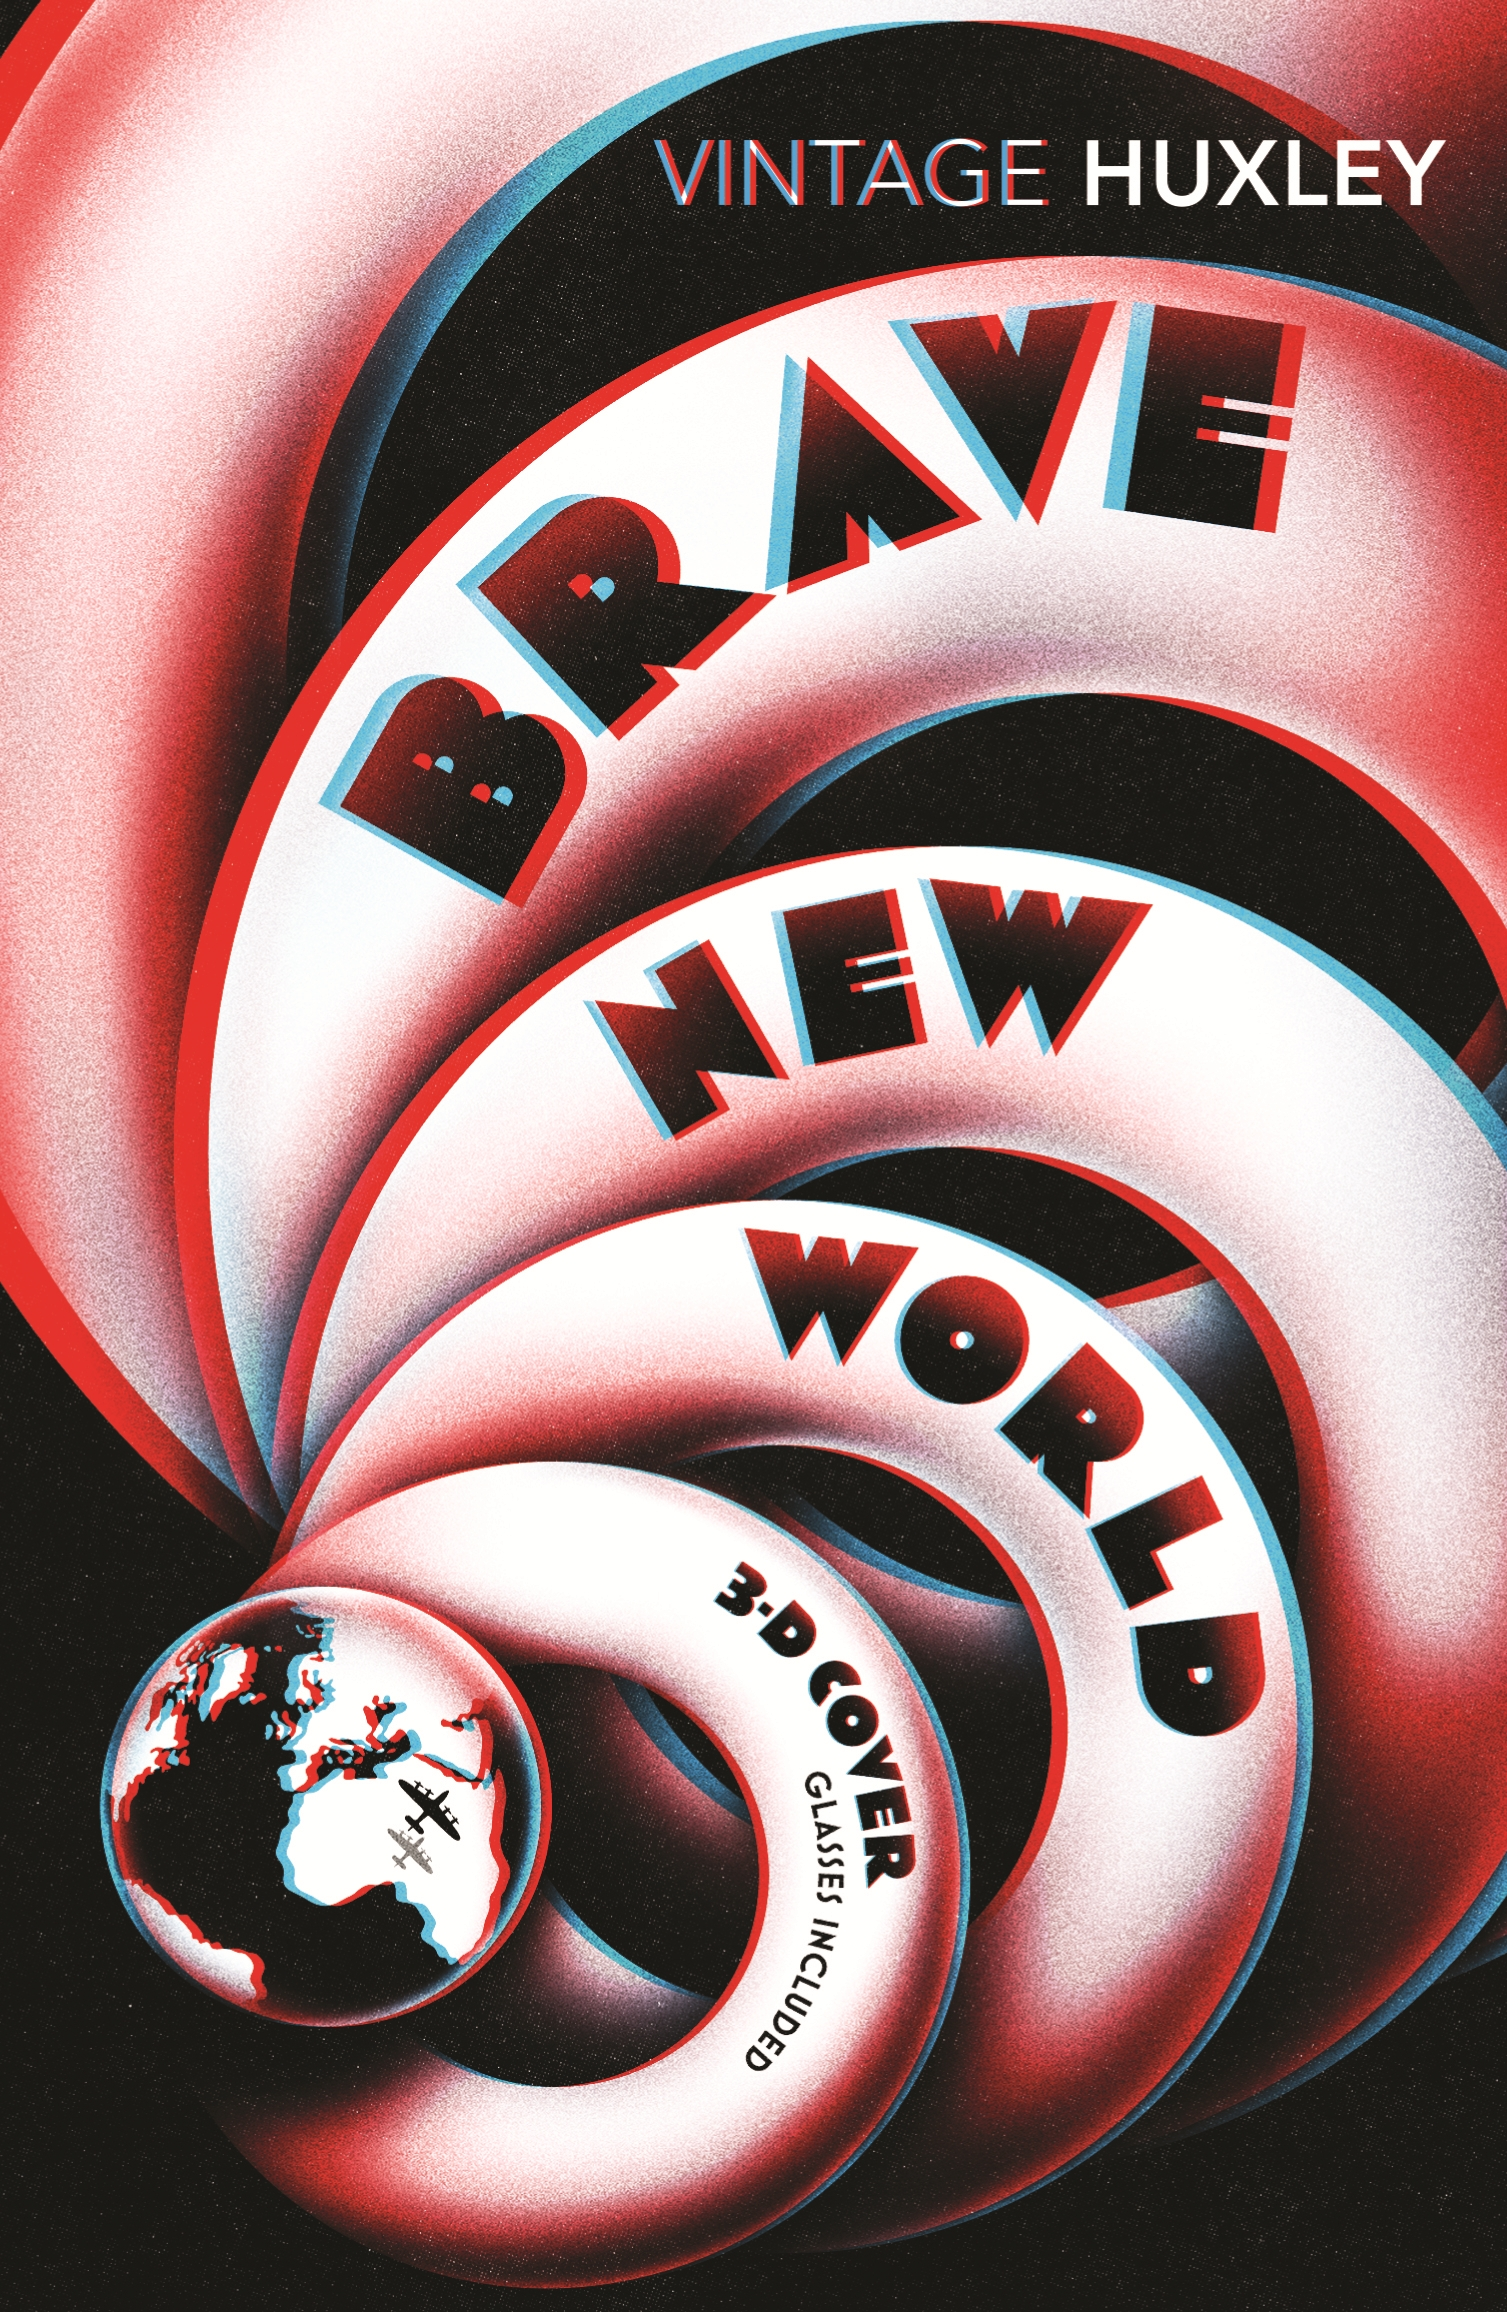 brave new world through marxist lens Aldous huxley's brave new world (1932) is one of the best known dystopian  this can be seen through huxley's description of the abolition of motherhood, and  eco-marxism refers to the philosopher karl marx and his theory of the fight of.